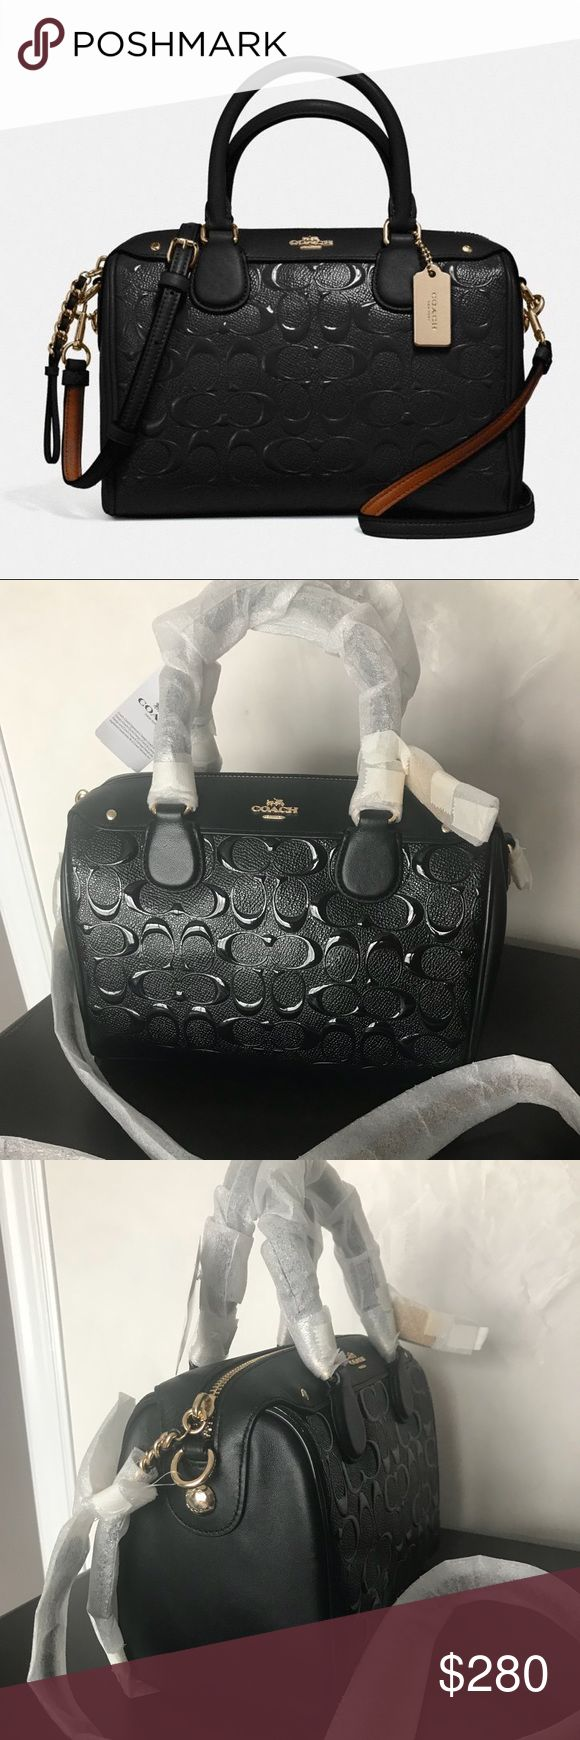 "⚜️ C O A C H  M I N I  S A T C H E L ⚜️ New. Super adorable. I am more than ok if it doesn't sells 😂 patent leather, pockets inside. Handles 4"" drop, strap is 23"".  9""L x 6 1/2""H x 5""W Coach Bags Satchels"